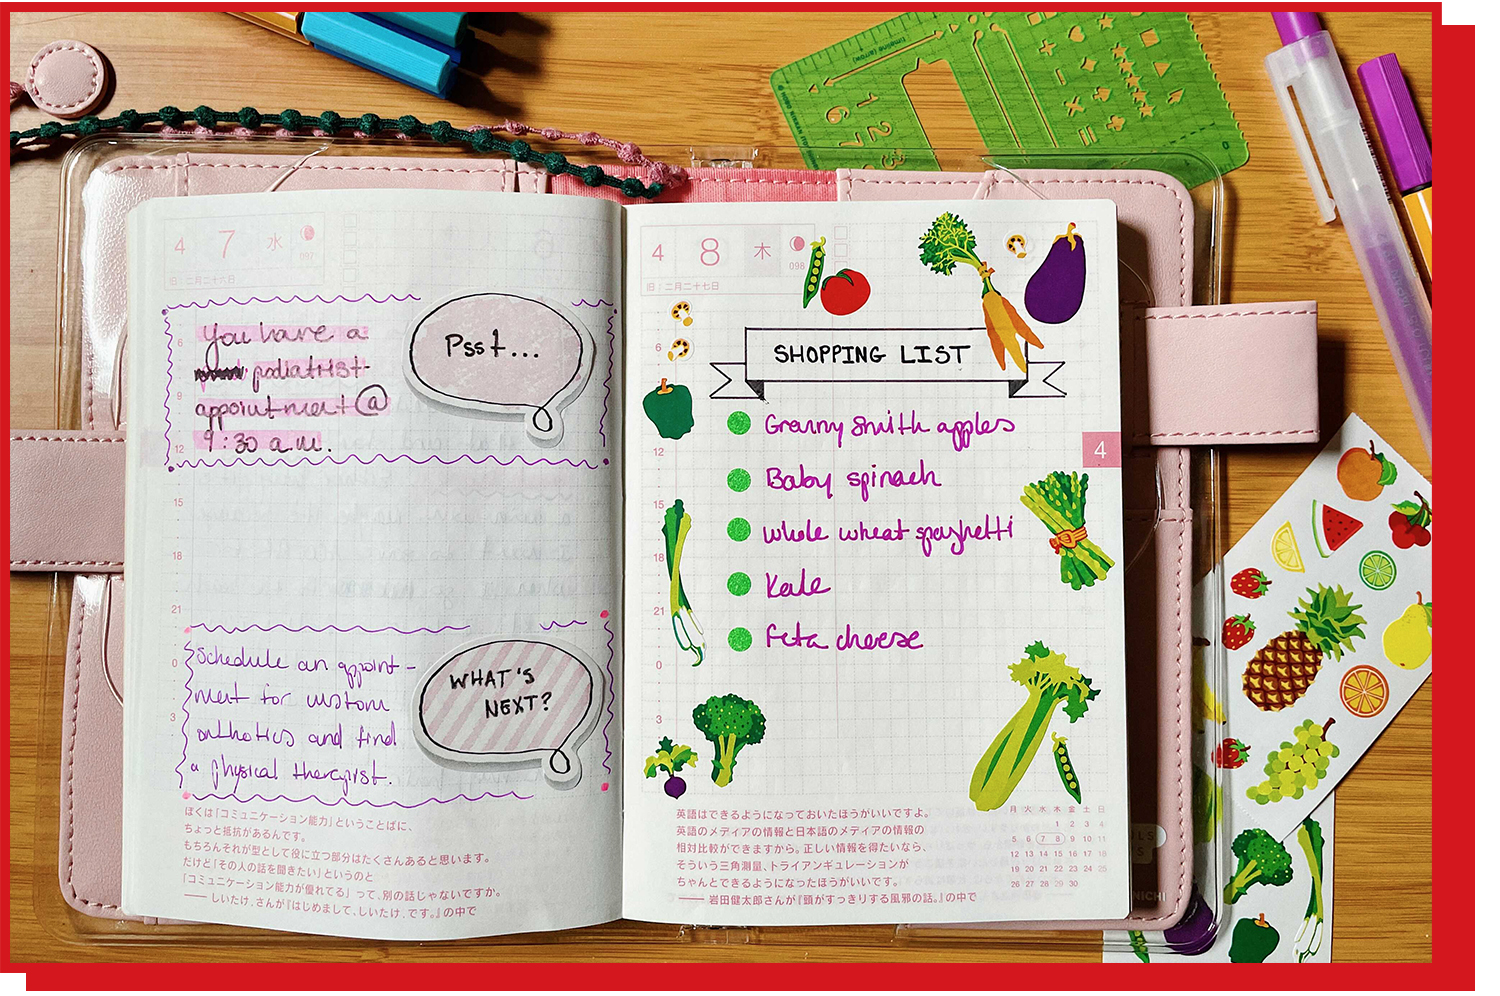 An open planner with a written list of items and assorted stickers of fruits and vegetables.